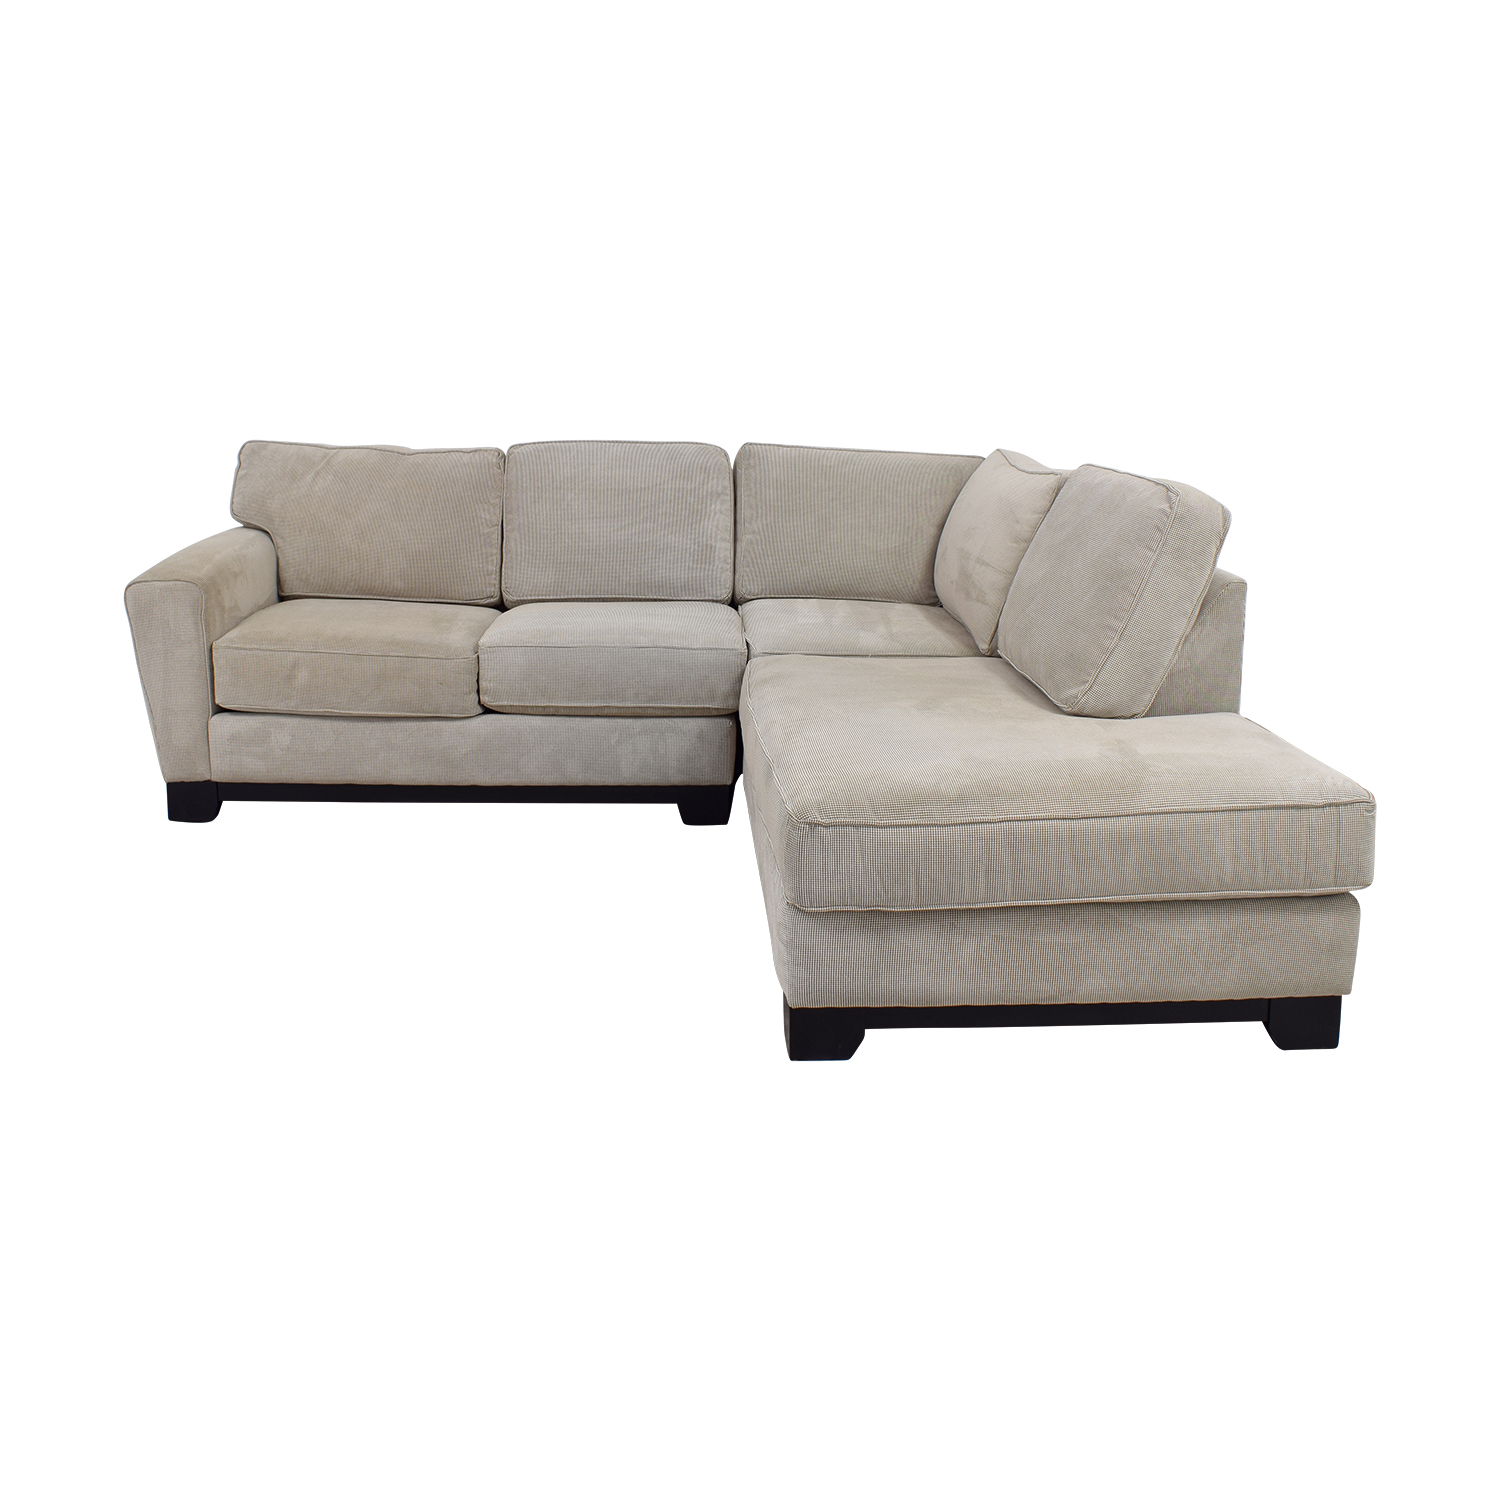 buy Jordans Furniture Beige L-Shaped Sectional Jordans Furniture